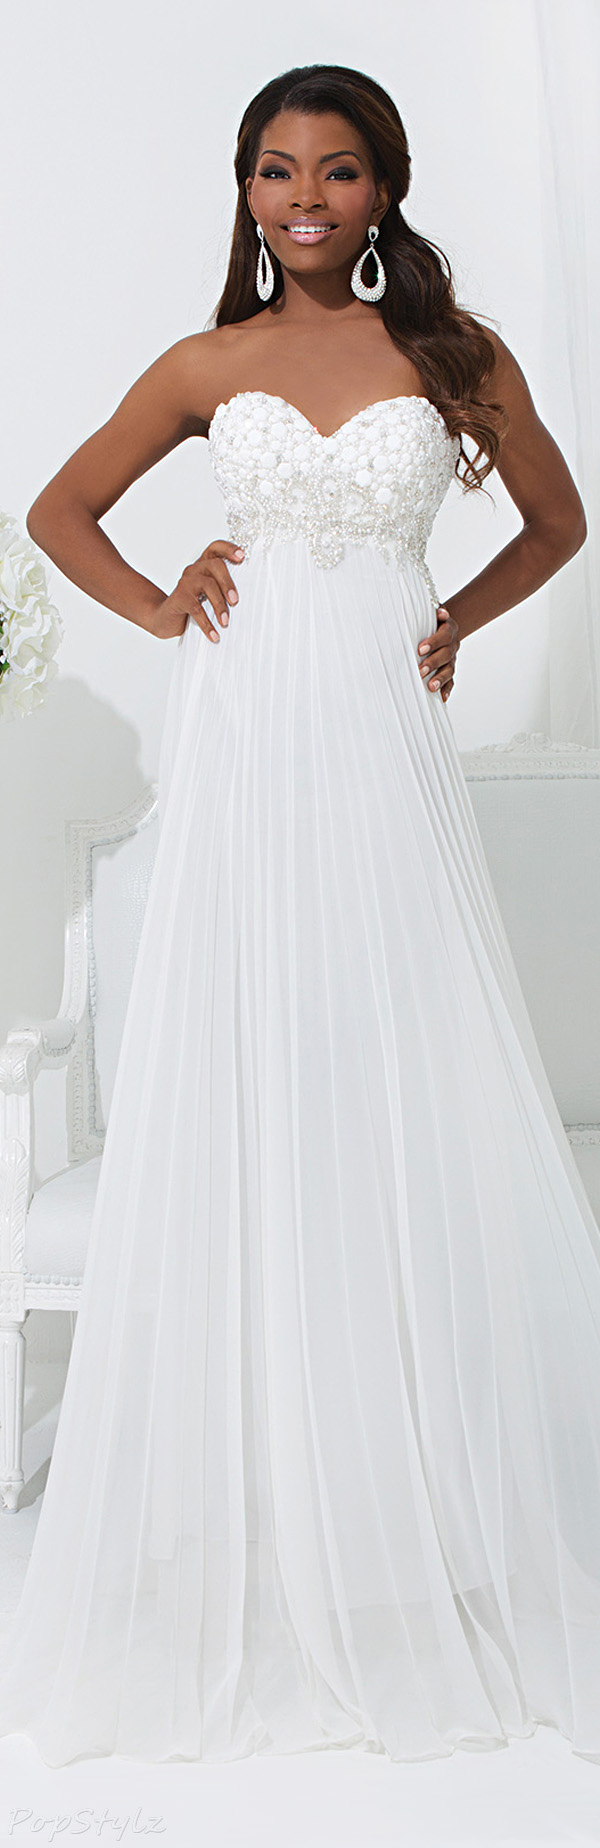 Tony Bowls 114507 Elegant Strapless Floor Length Gown